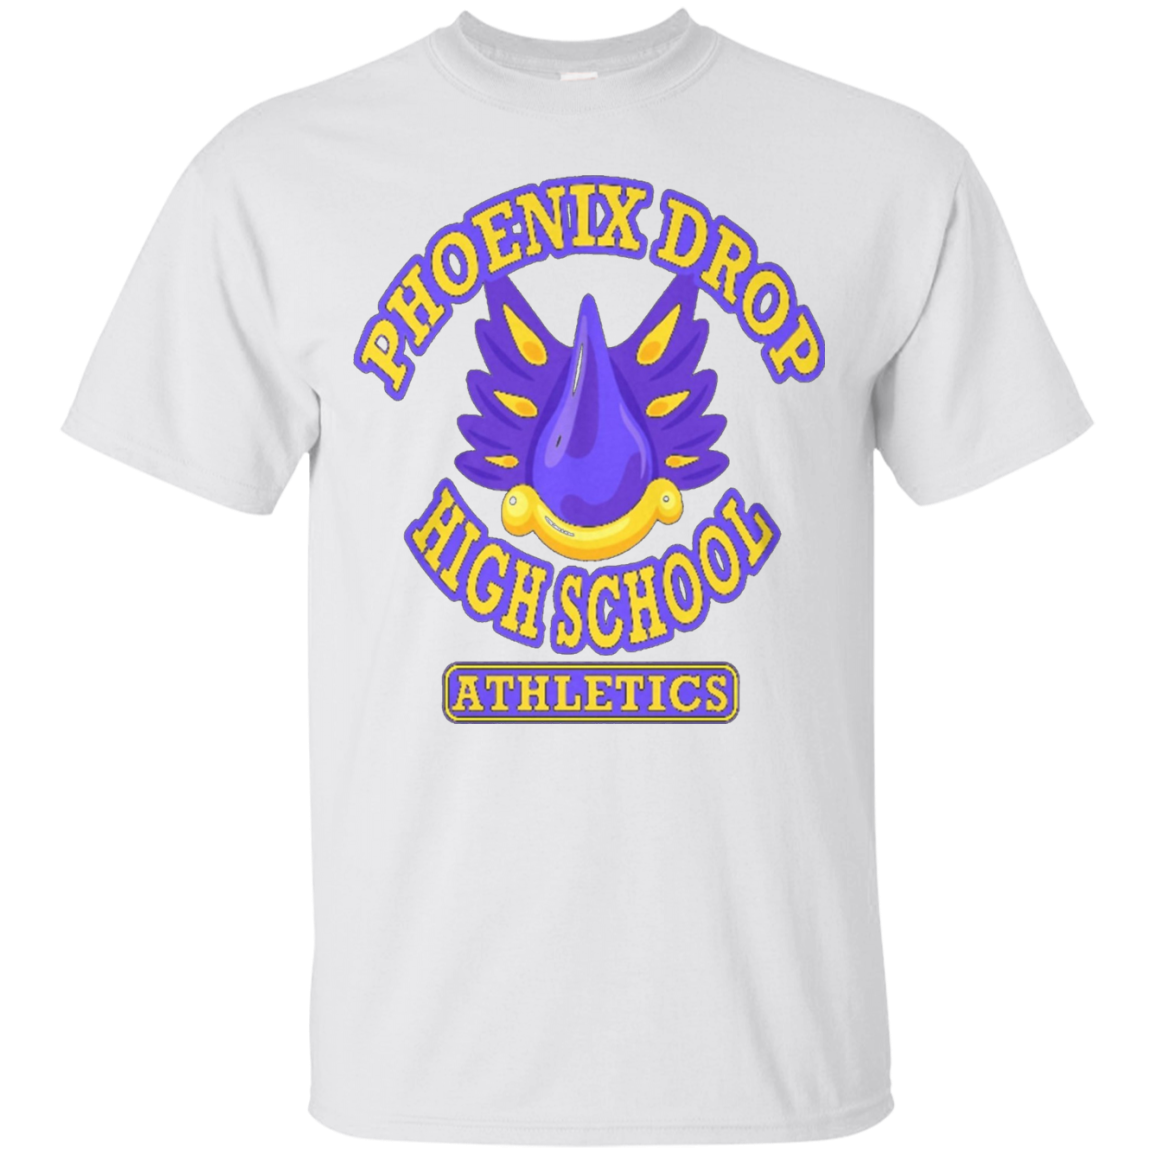 Athlete TShirts - PHOENIX DROP - HIGH SCHOOL - ATHLETICS